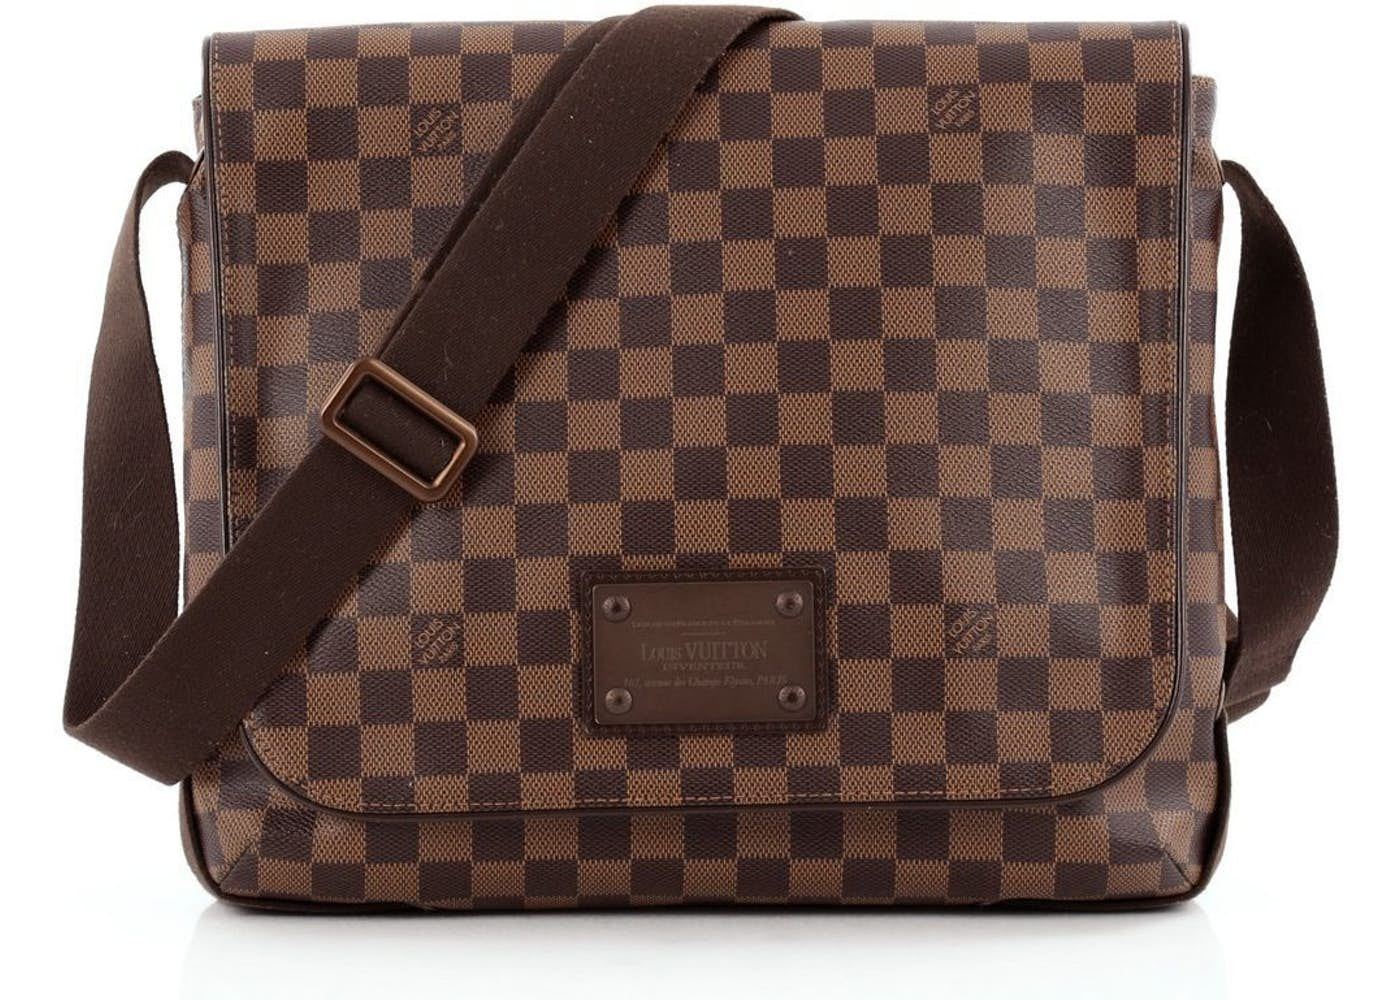 Louis Vuitton Brooklyn Mm Damier Messenger Bag  190bb2573f430